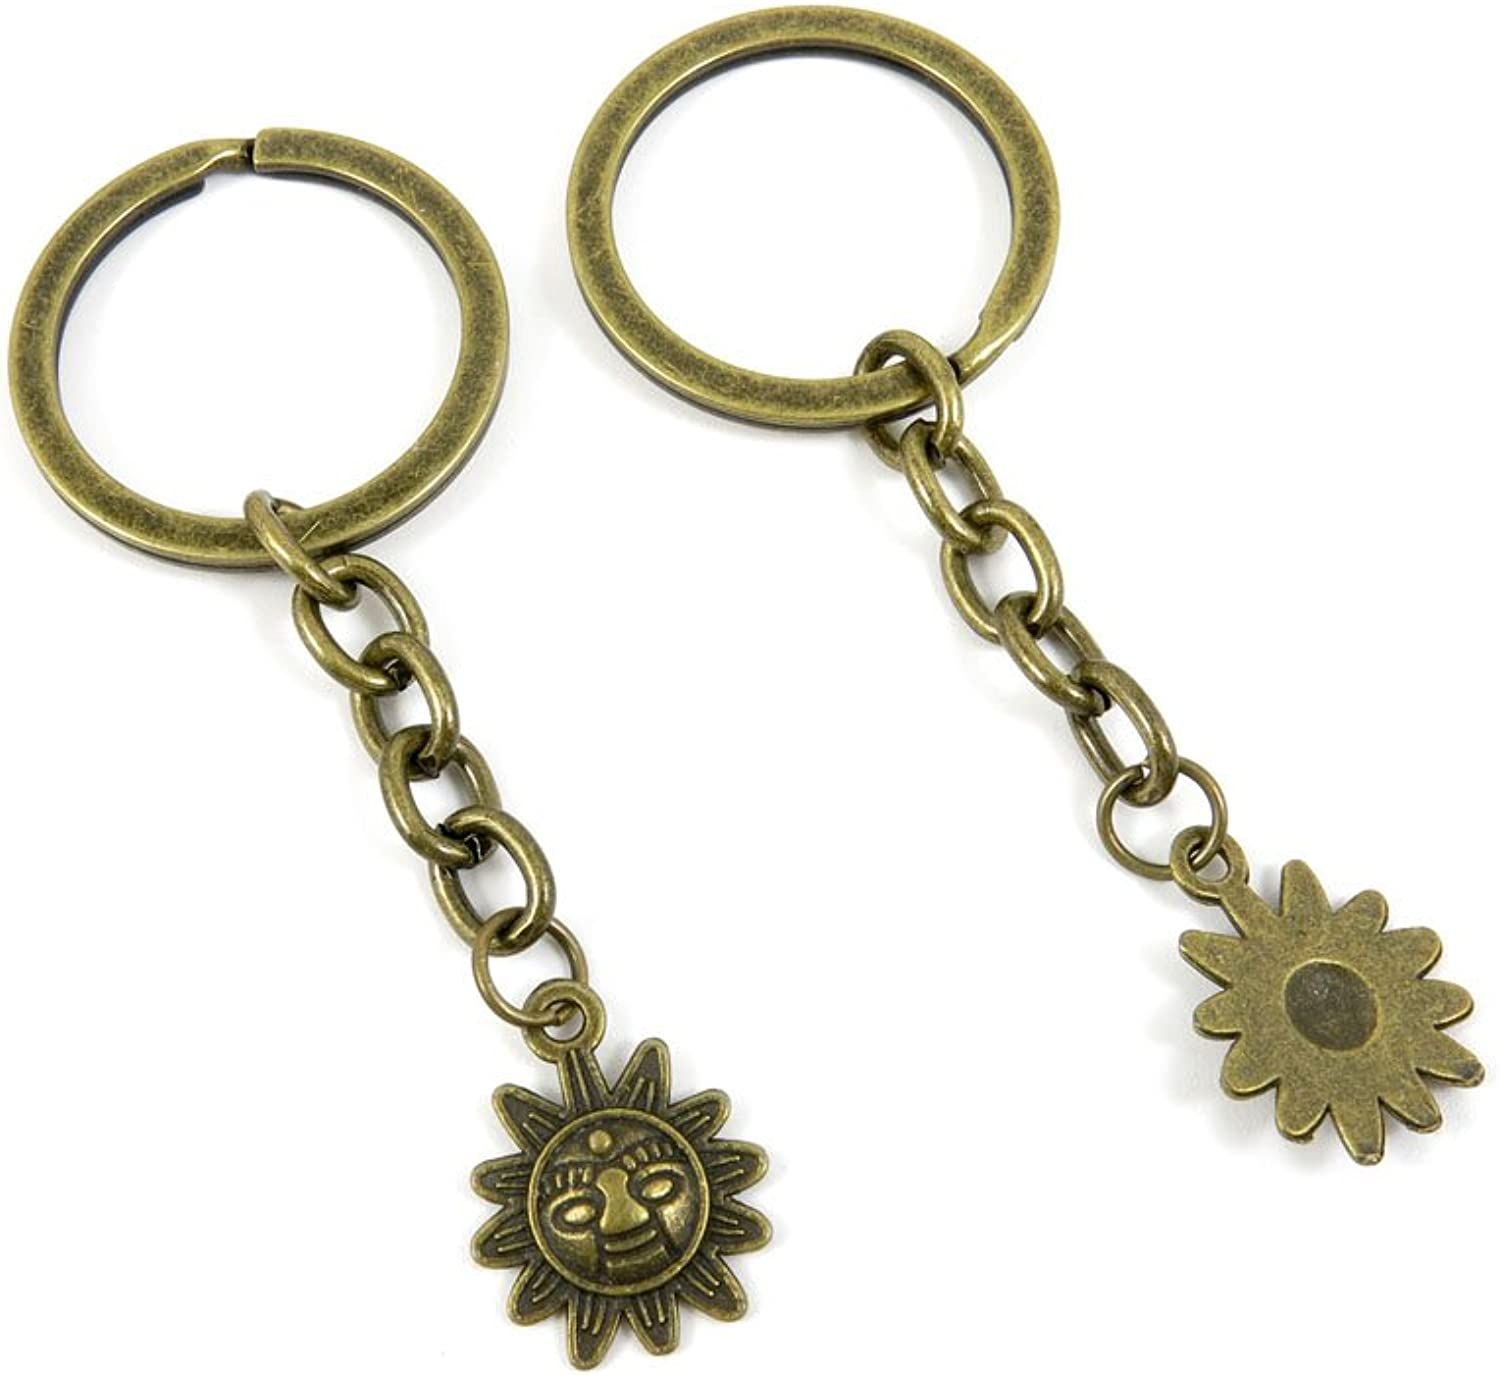 240 Pieces Fashion Jewelry Keyring Keychain Door Car Key Tag Ring Chain Supplier Supply Wholesale Bulk Lots S1FD2 Titan Sunflower